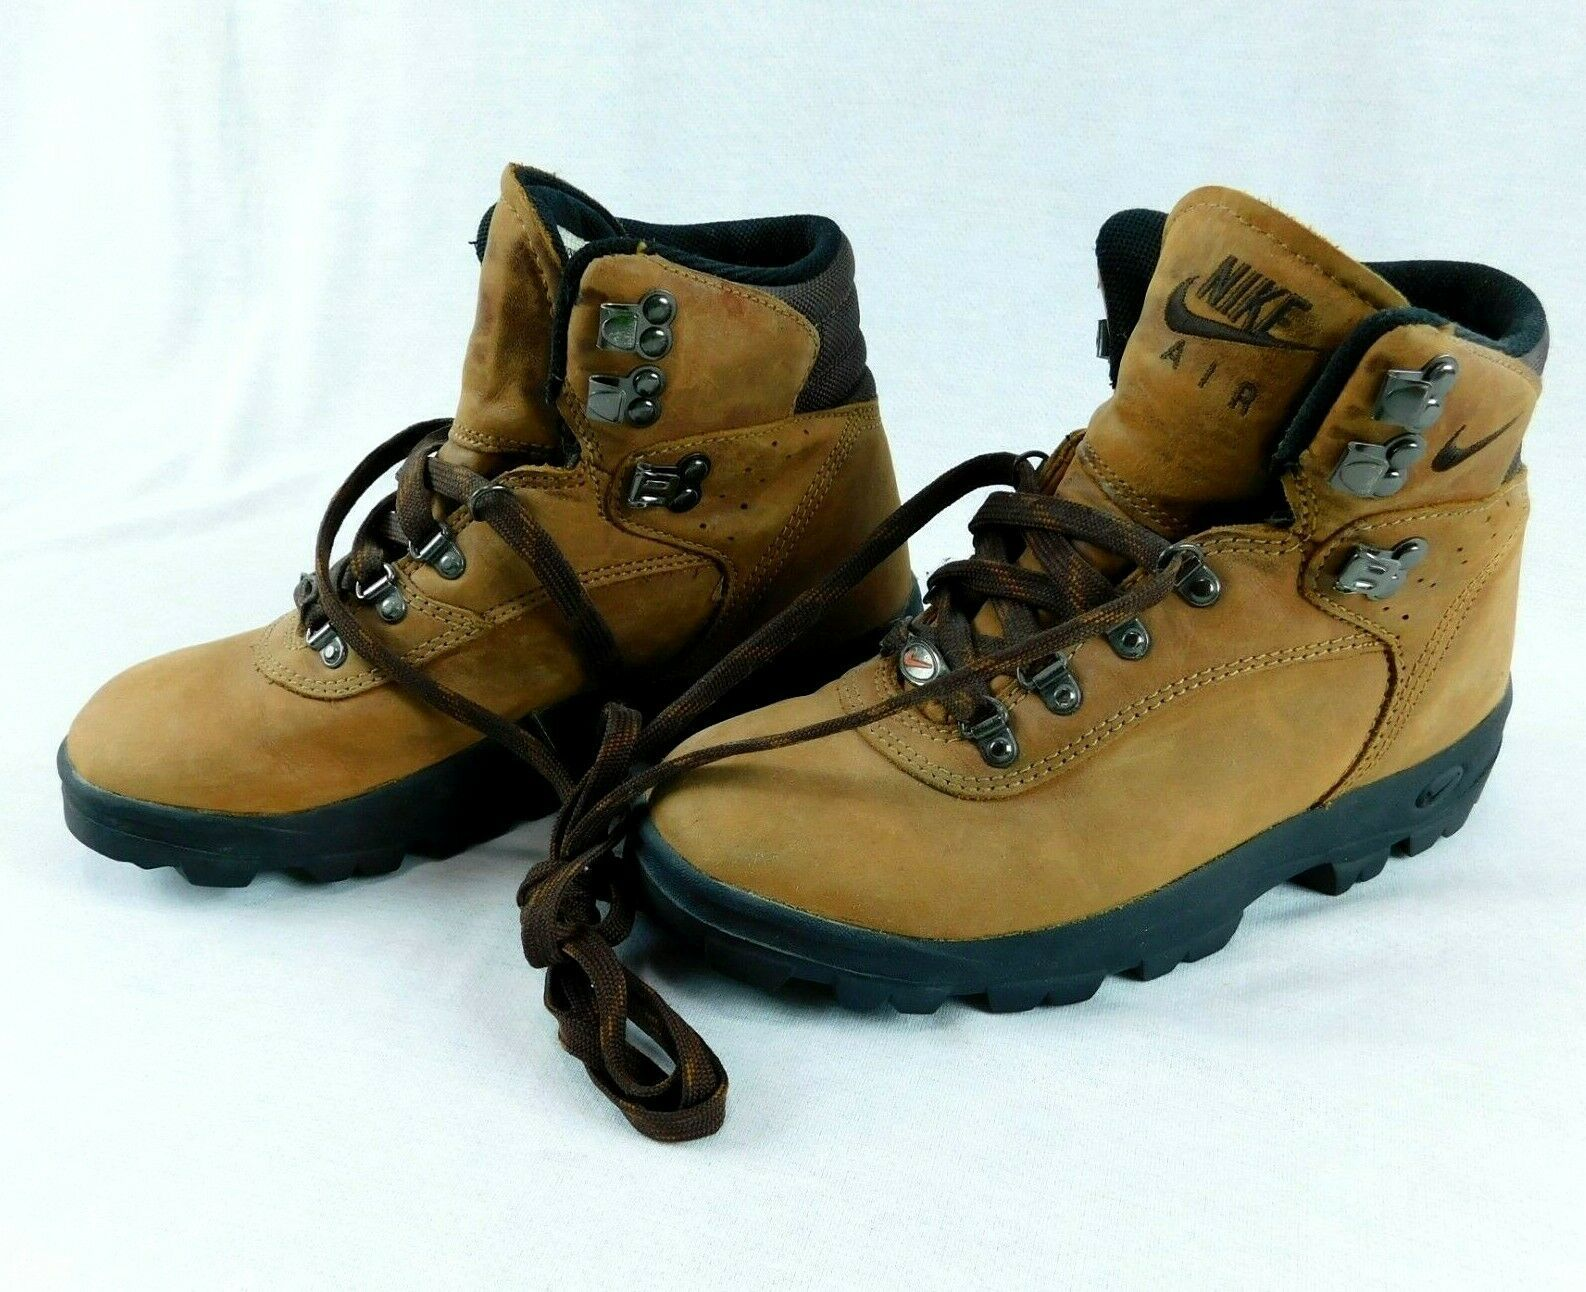 5cfd5b4217e Nike Air ACG Hiking Boots 8.5 Women's Ladies and 50 similar items